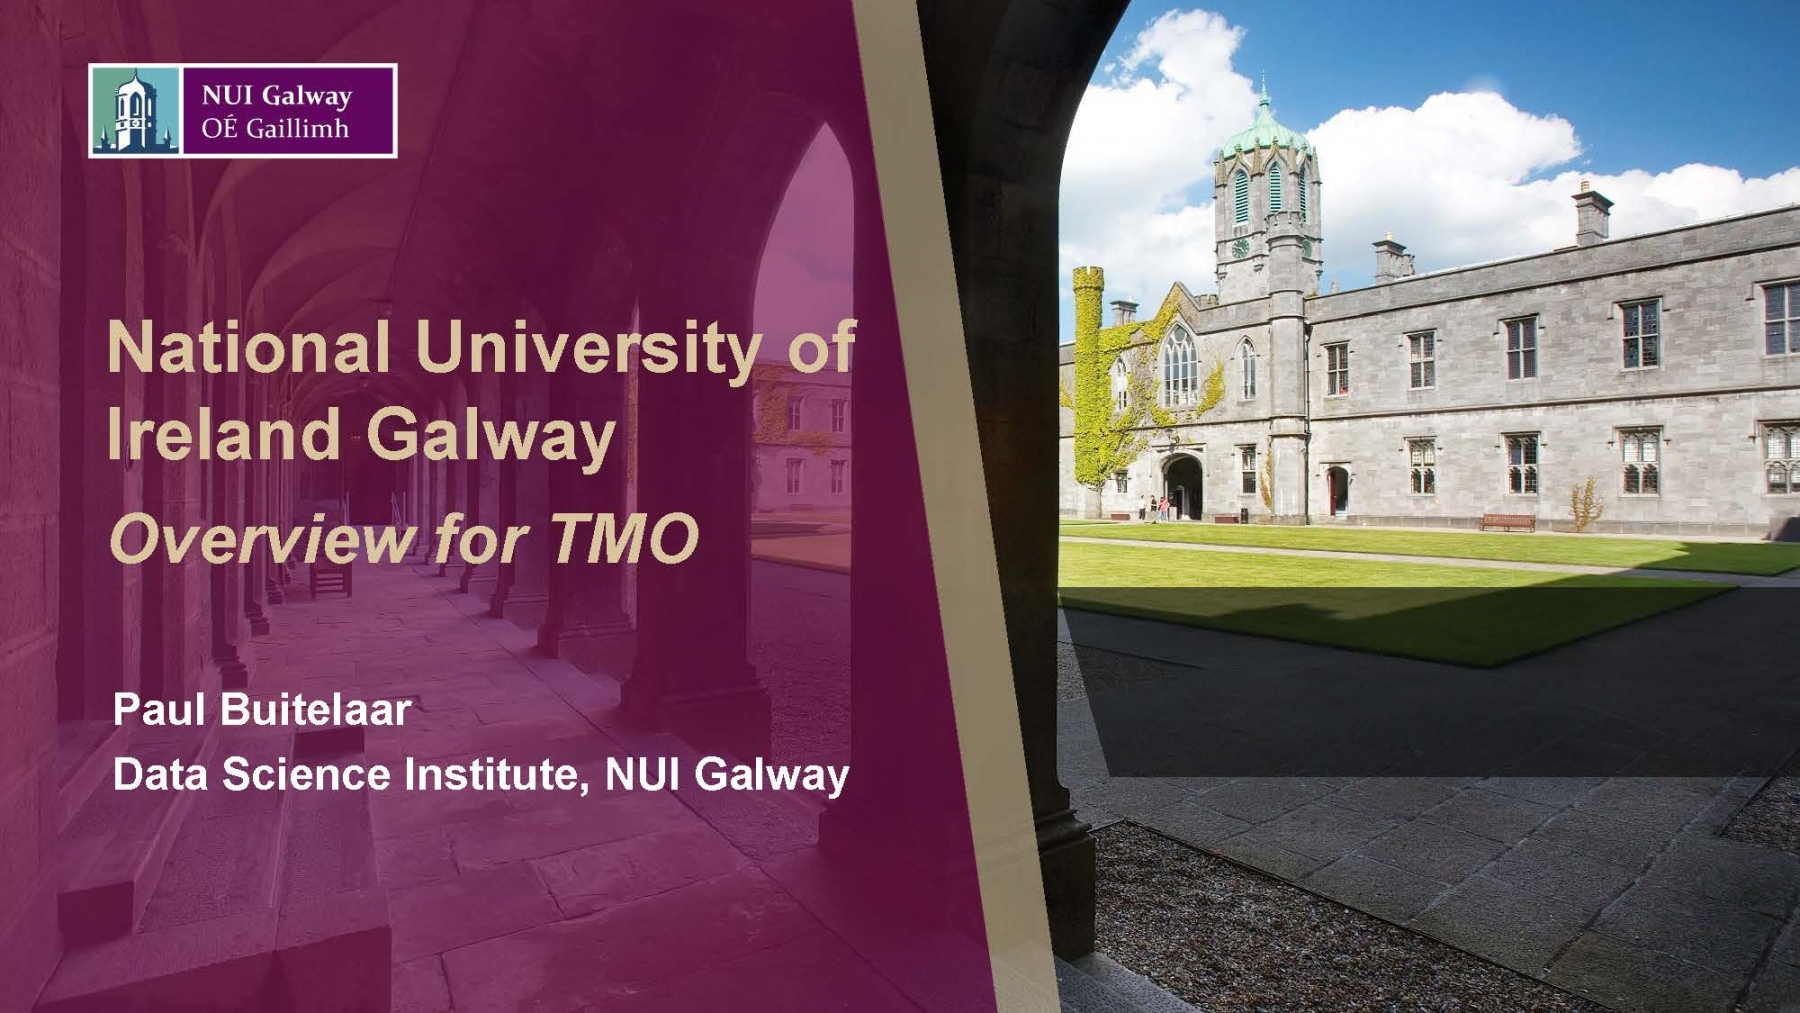 National University of Ireland Galway (pres. by Paul Buitelaar)